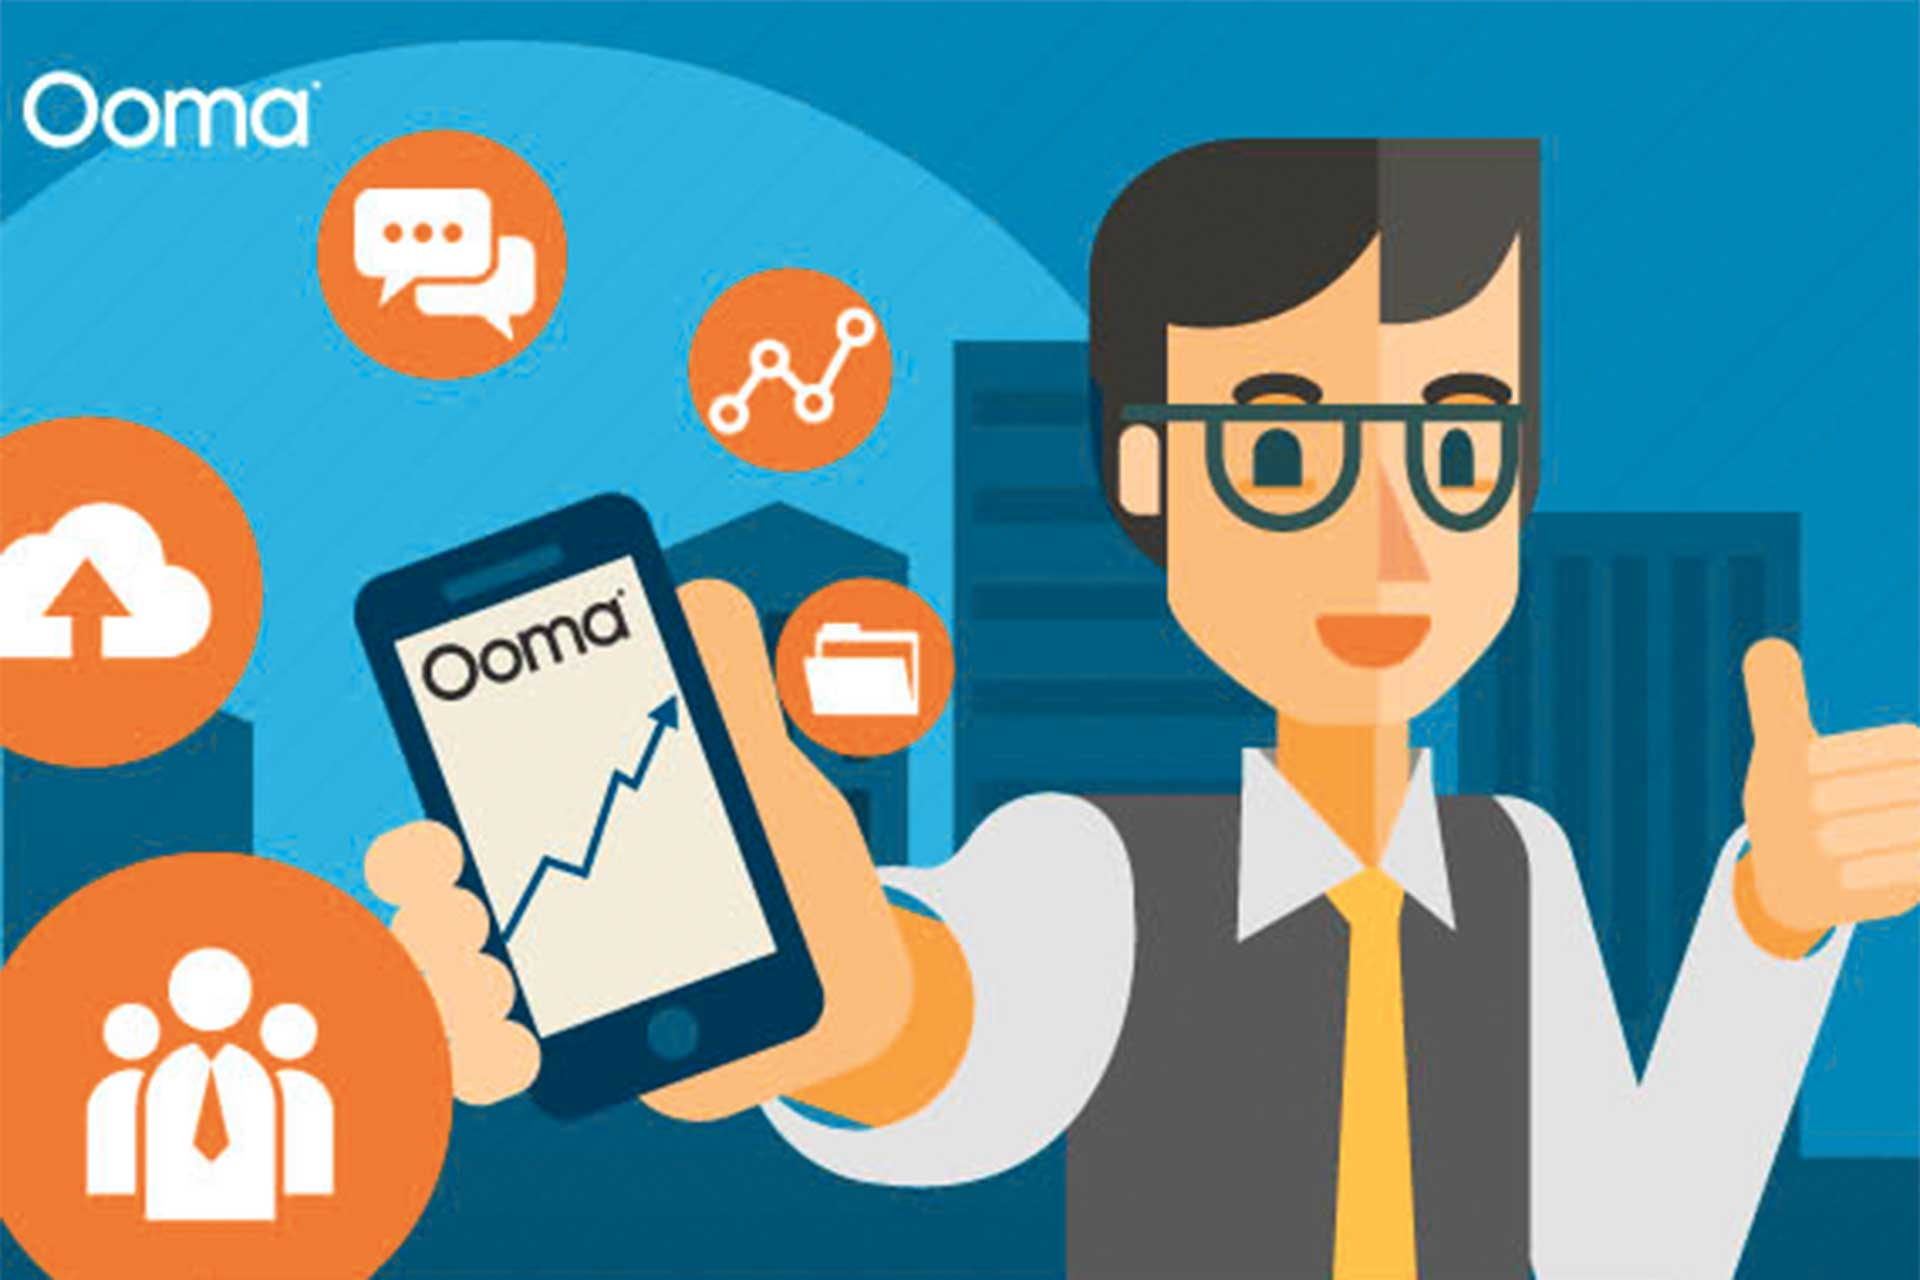 Ooma's Guide to Running Your Business From Your Mobile Device